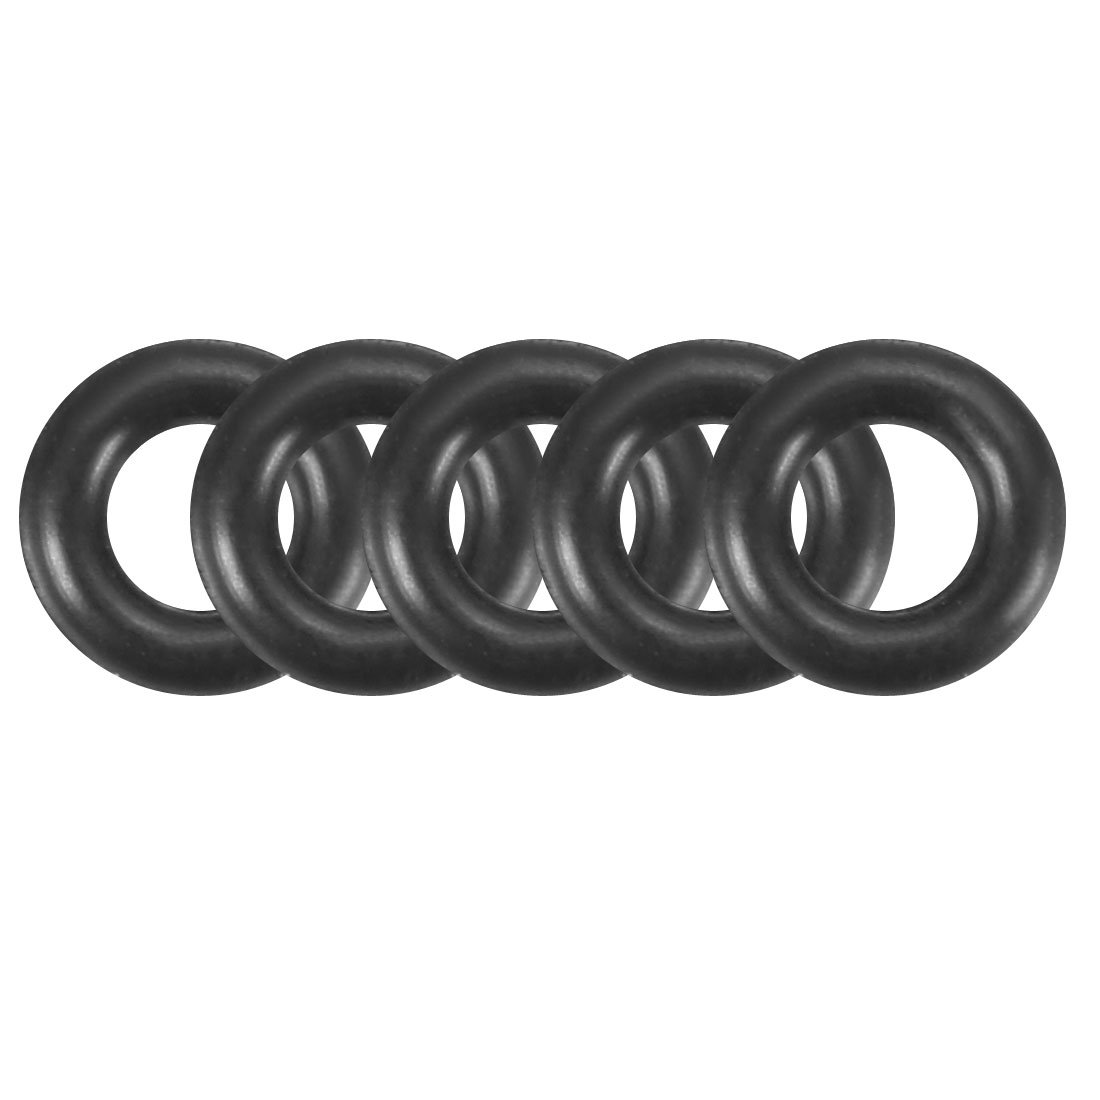 100Pcs 4mmx1mm Nitrile Rubber O-rings Heat Resistant Sealing Ring Grommets Black